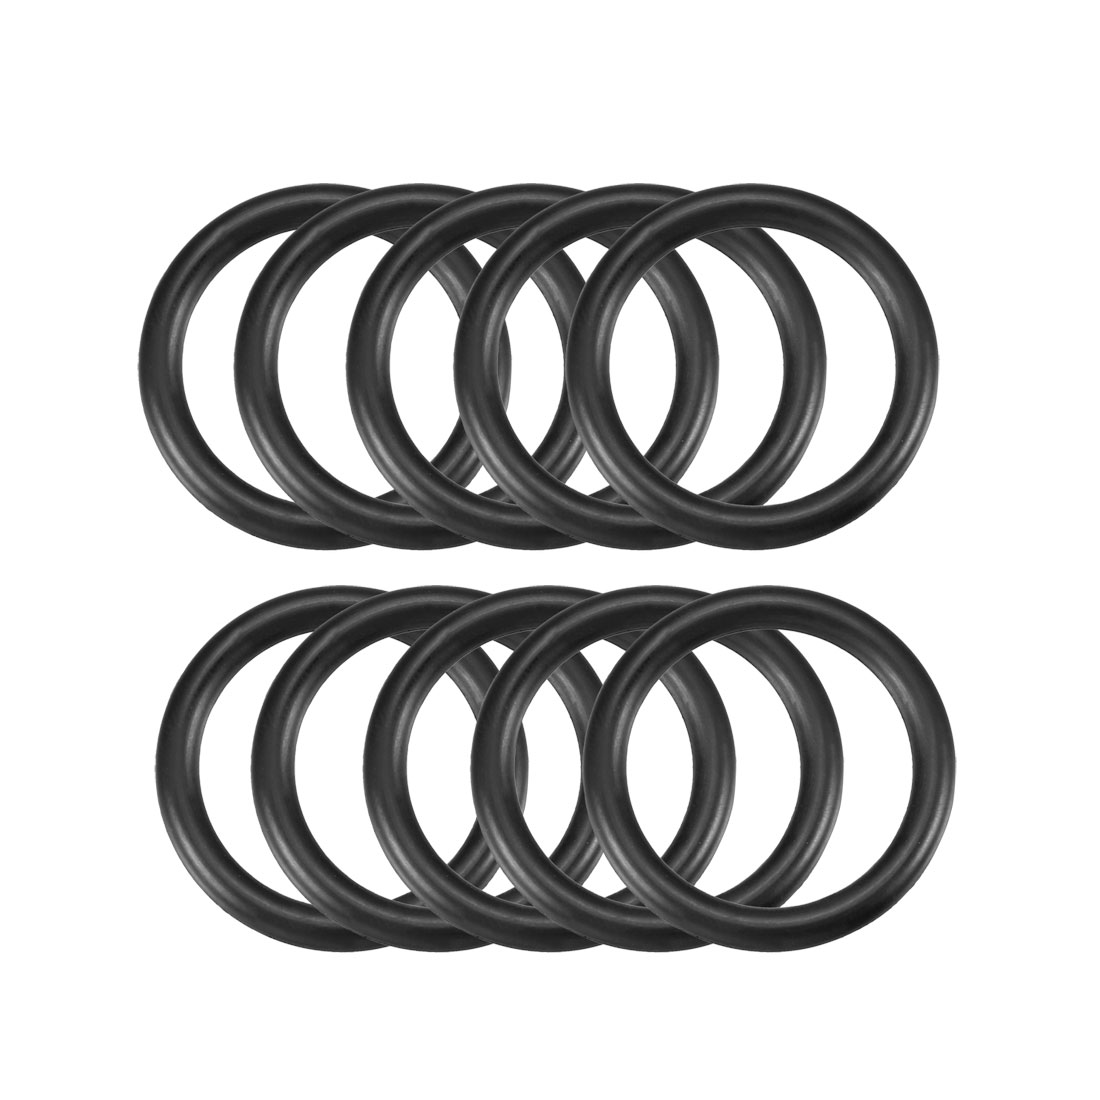 10 Pcs 30mm x 3.5mm Black Silicone O Rings Oil Seals Gaskets